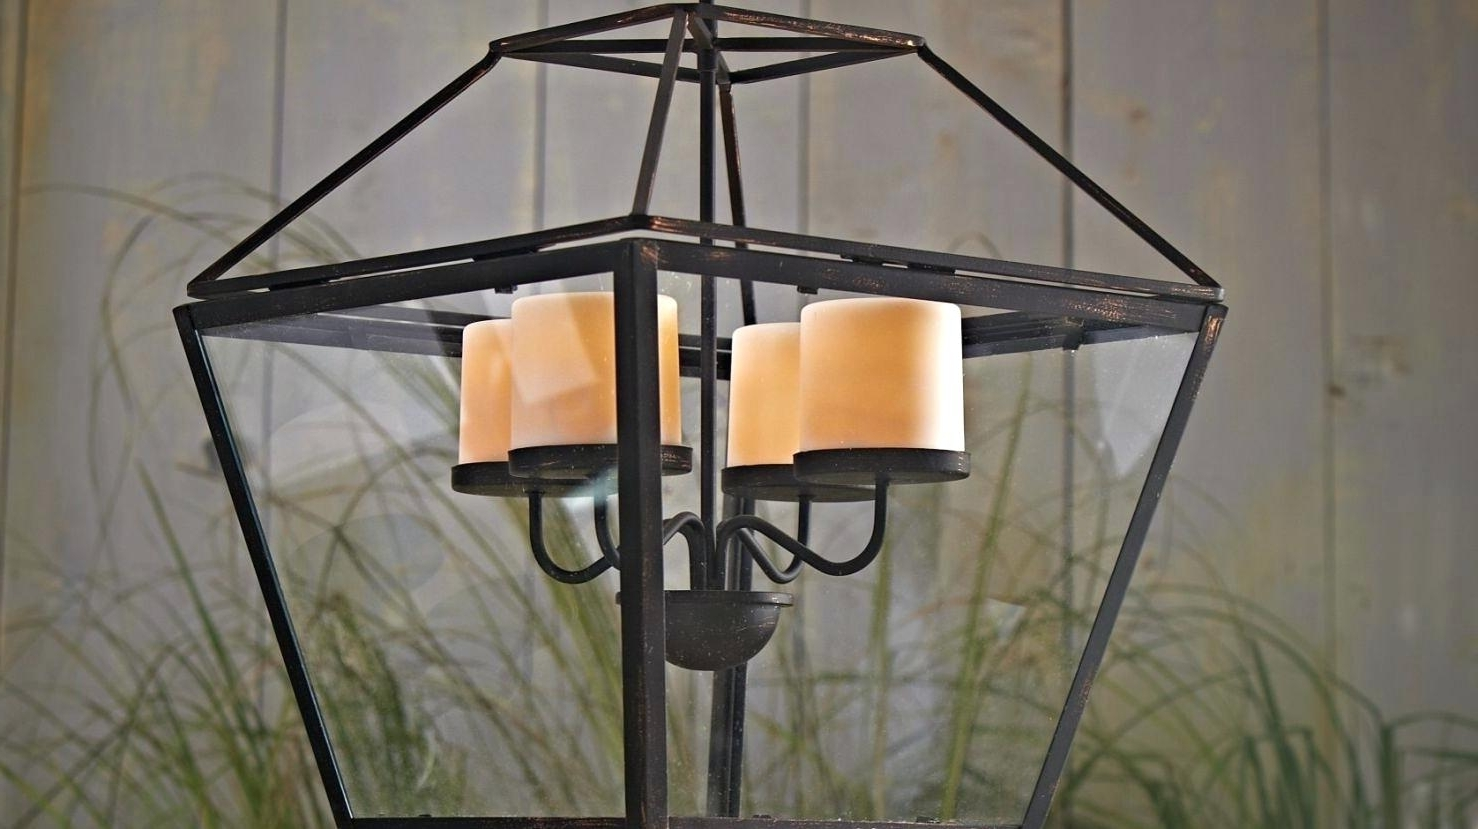 Metal Ball Candle Chandeliers Pertaining To Favorite Candles: Chandelier Parts Candle Covers (View 18 of 20)